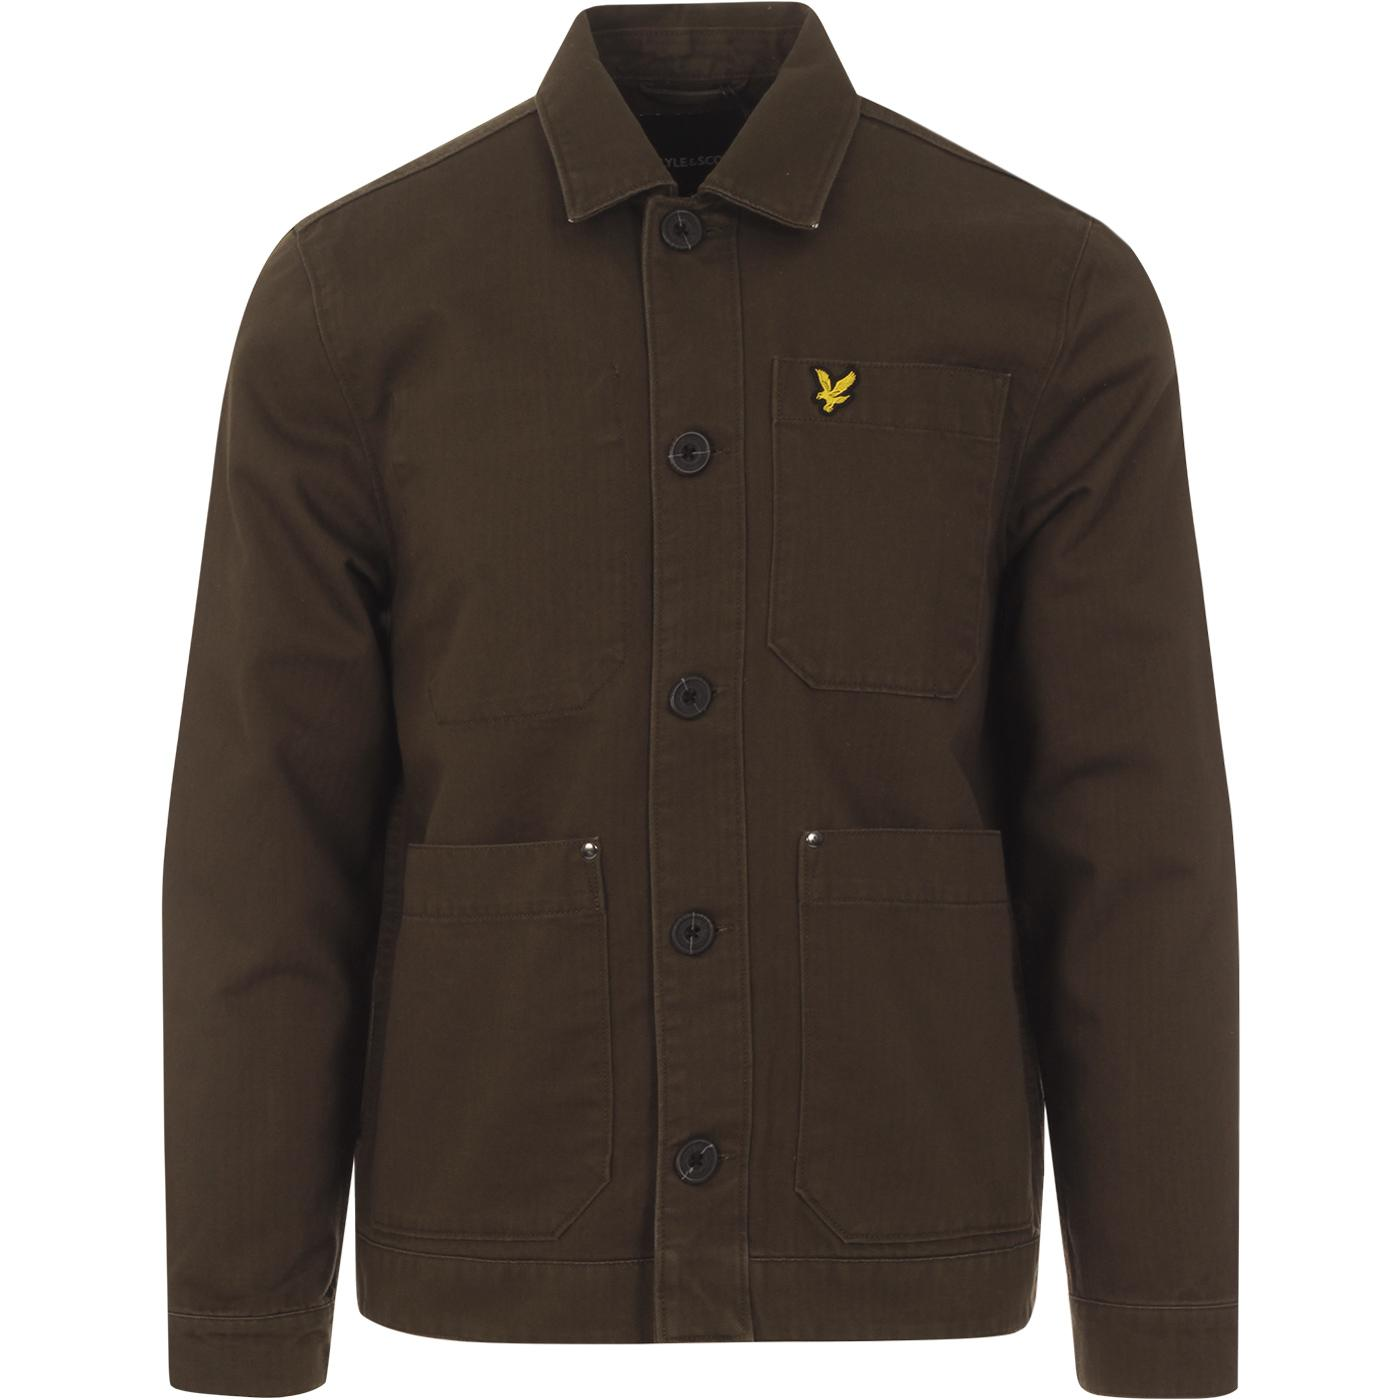 LYLE & SCOTT Herringbone Military Chore Jacket (G)